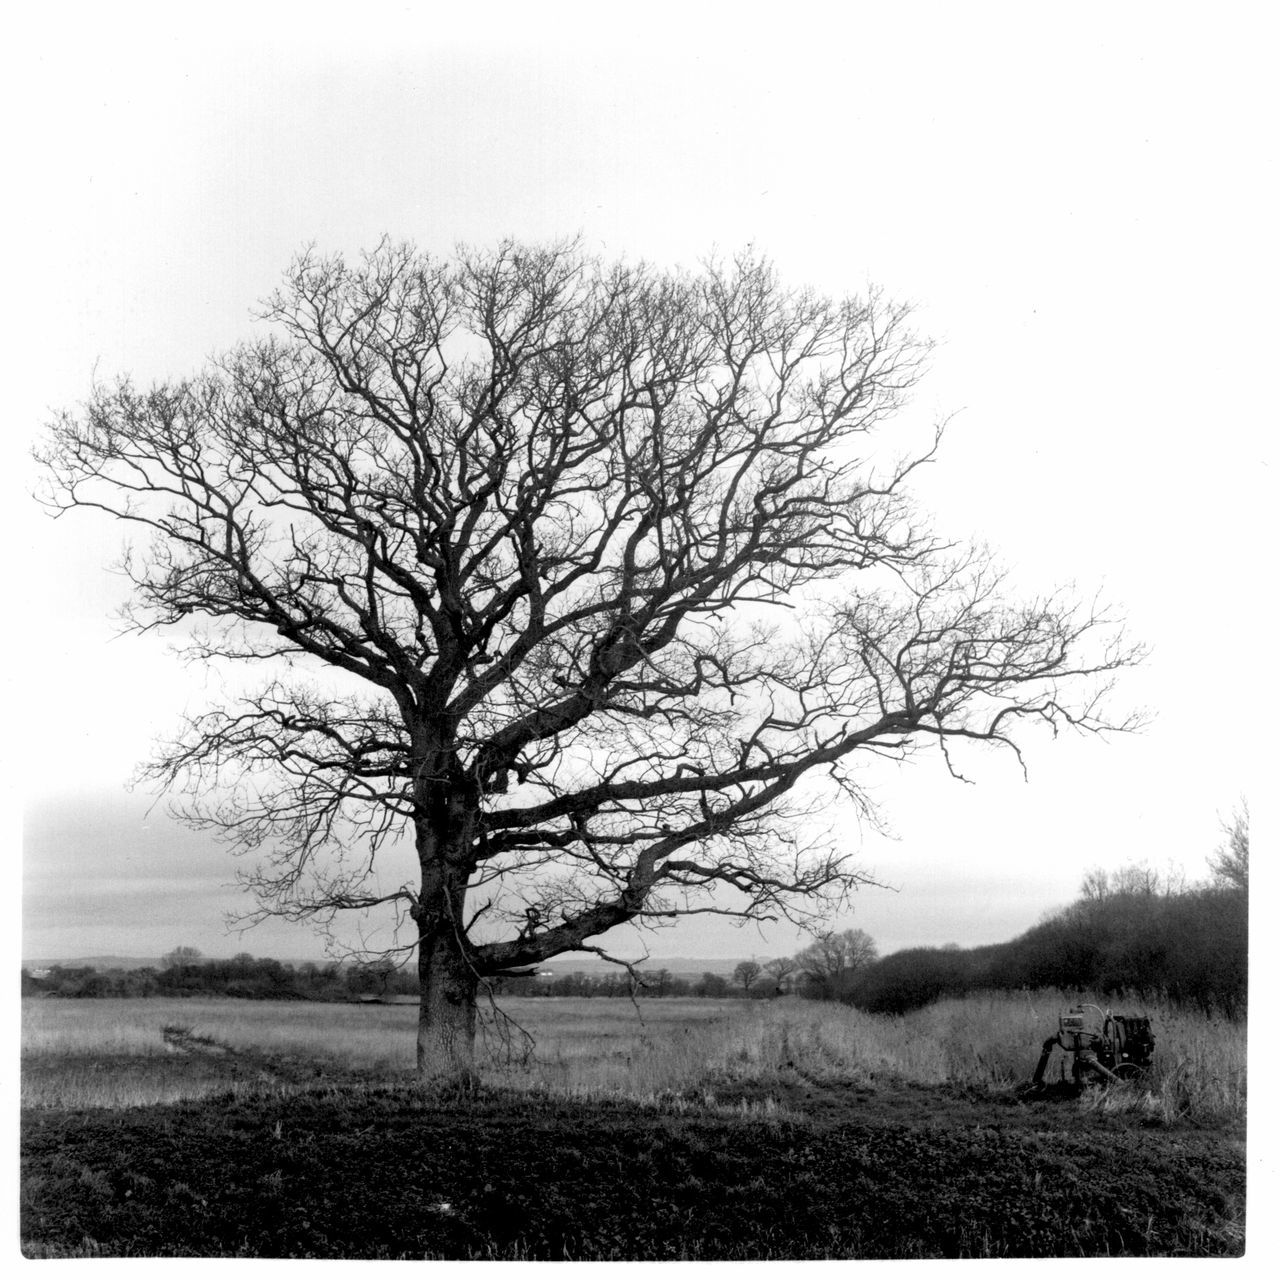 Analogue Bare Tree Beauty In Nature Blackandwhite Bristol Folk House Darkroom Chemistry Darkroom Film Photography Isolated Landscape Monochrome Nature No People Oak Outdoors Retro Rolleicord Single Tree Sky Somerset Somerset Levels Uk TLR Camera Tranquil Scene Tranquility Tree